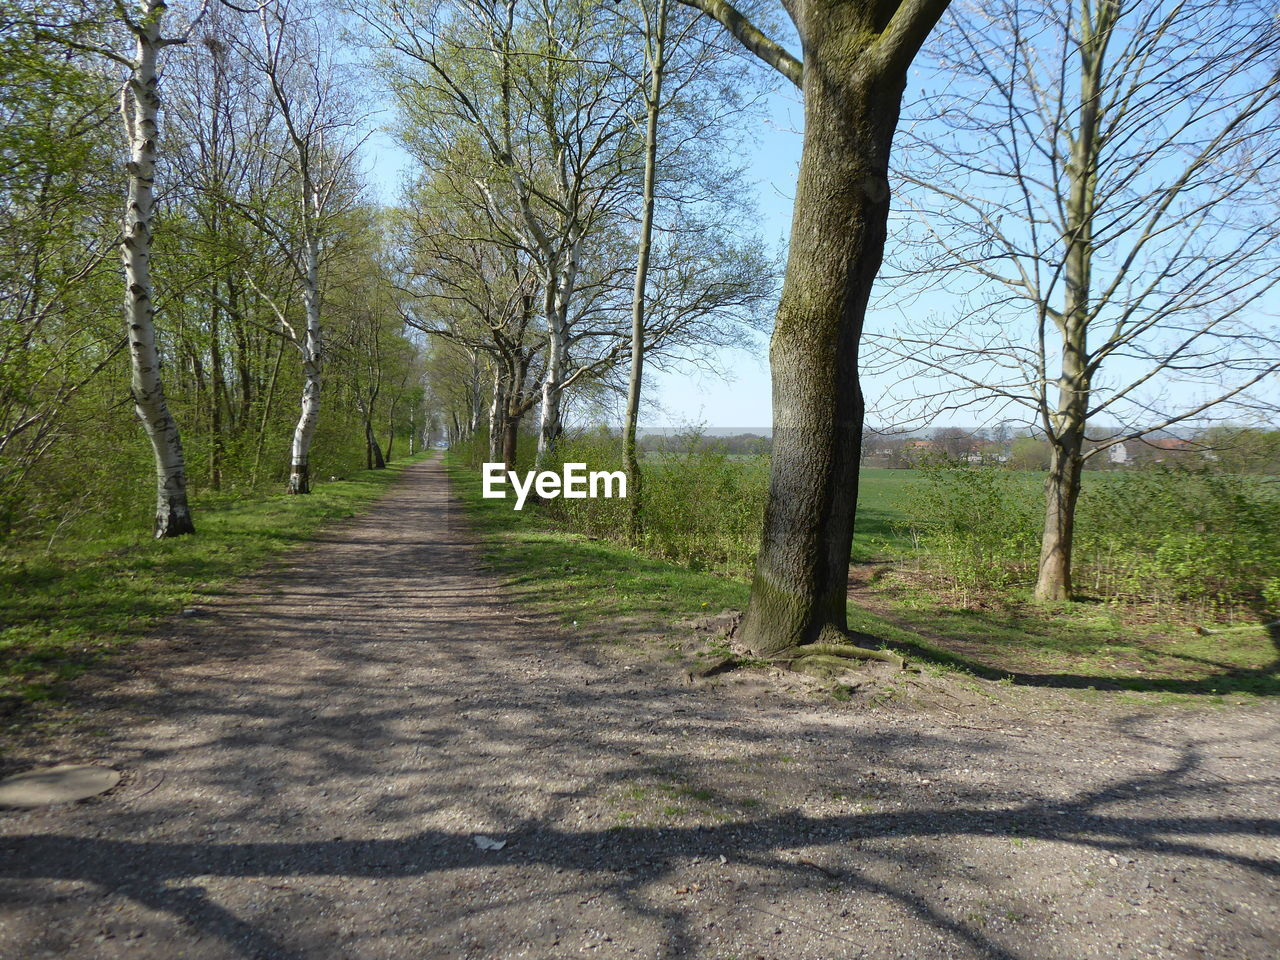 tree, plant, direction, the way forward, nature, tranquility, no people, trunk, tree trunk, land, tranquil scene, day, footpath, shadow, bare tree, growth, road, sunlight, park, scenics - nature, diminishing perspective, outdoors, woodland, treelined